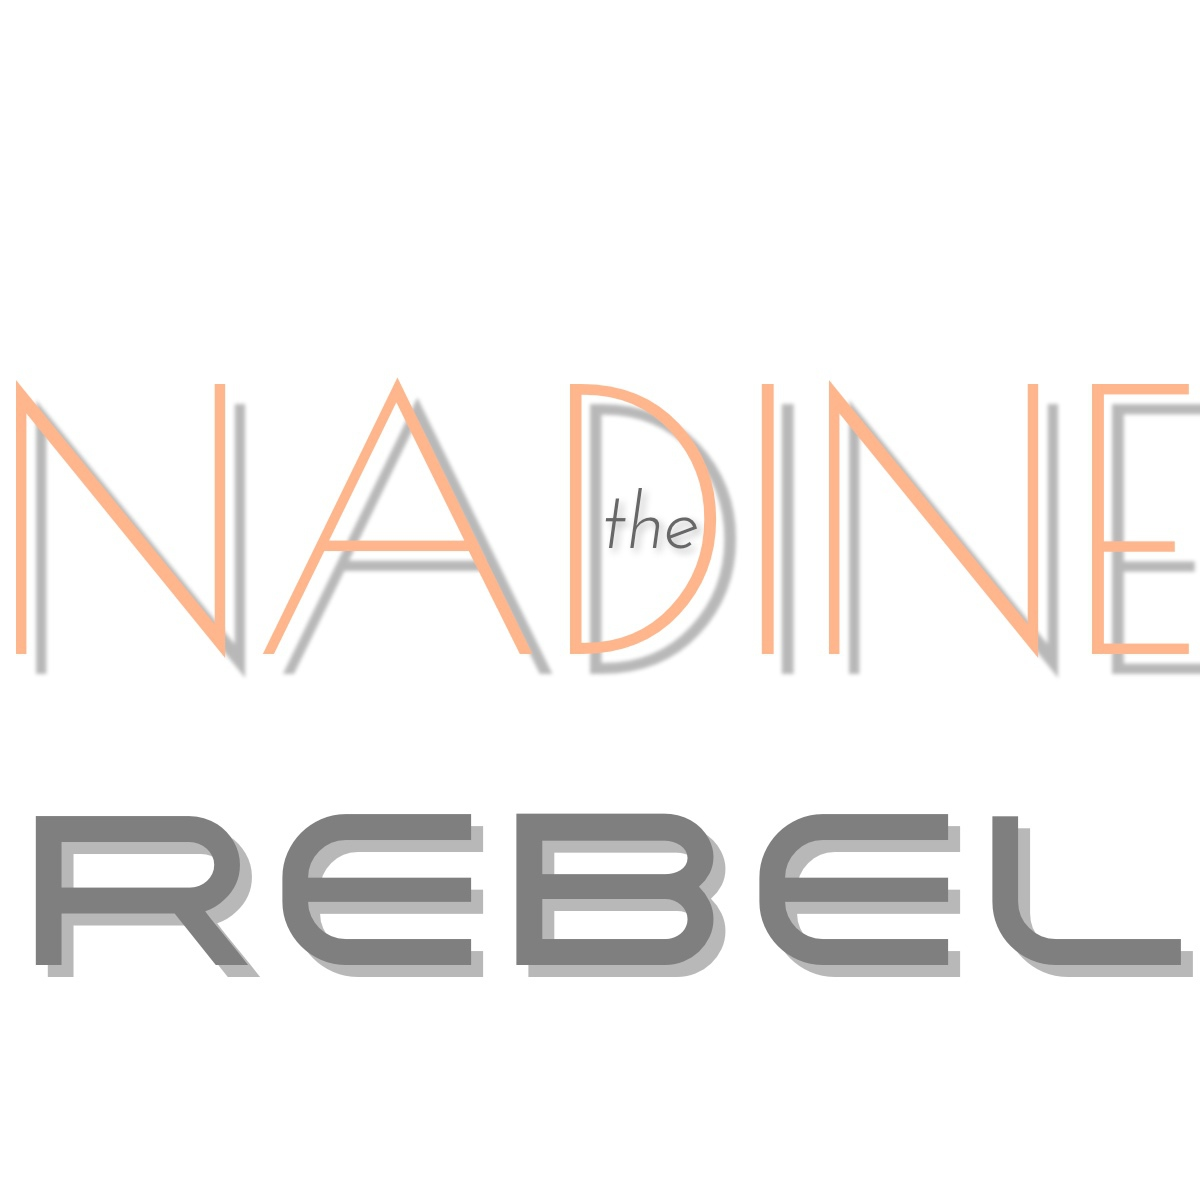 Nadine the rebel